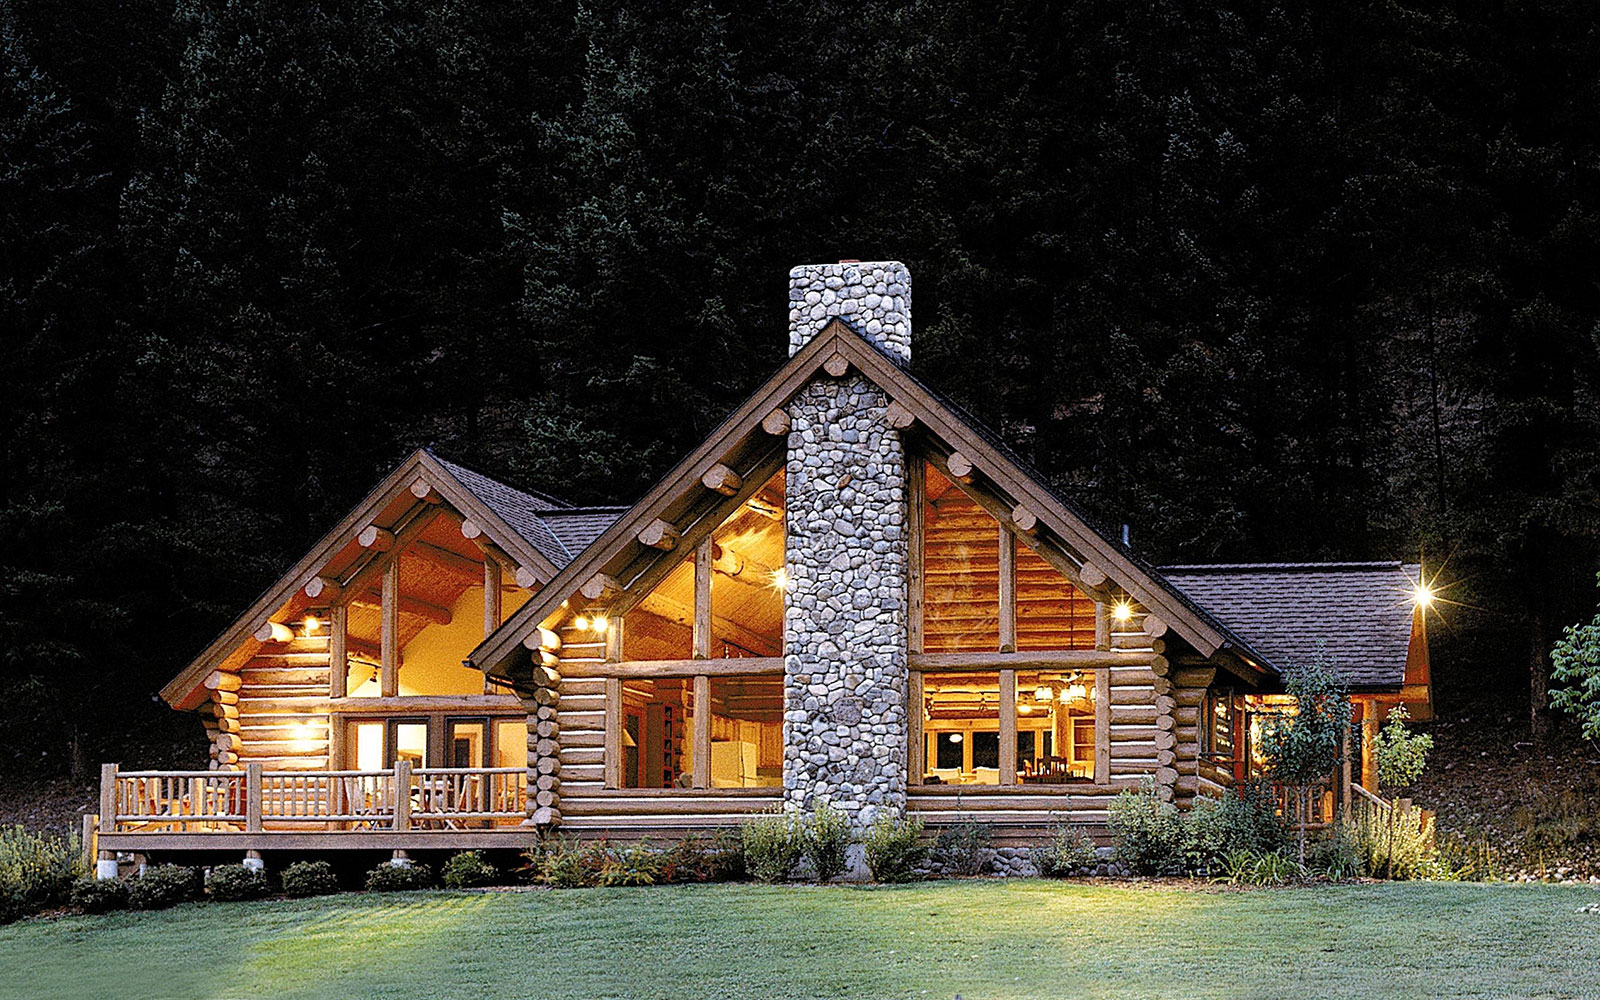 World's Top 50 Hotels: Triple Creek Ranch, Darby, Montana